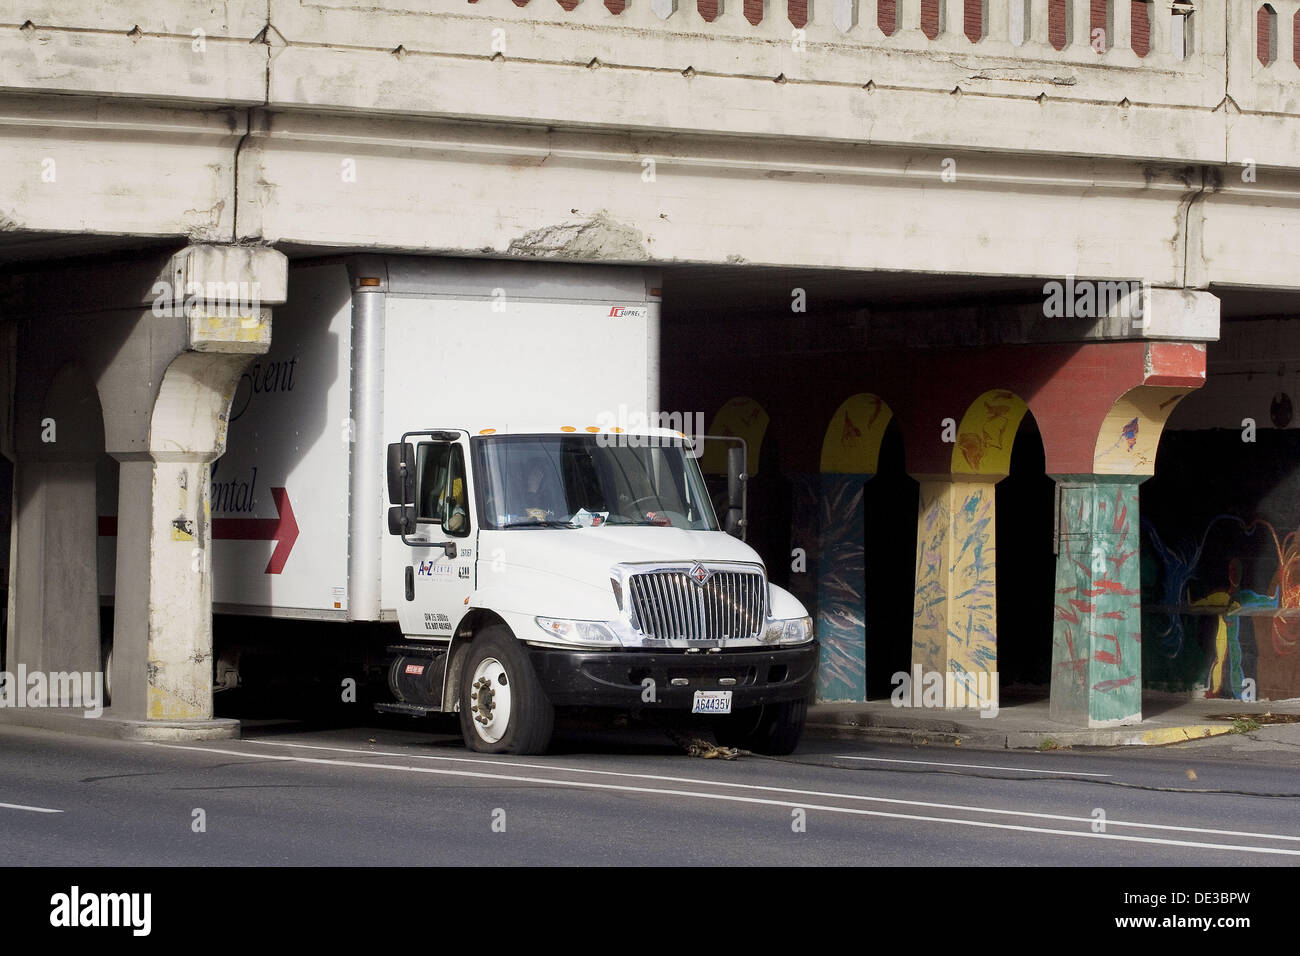 A Truck Stuck Under A Railroad Overpass The Air Has Been Let Out Of